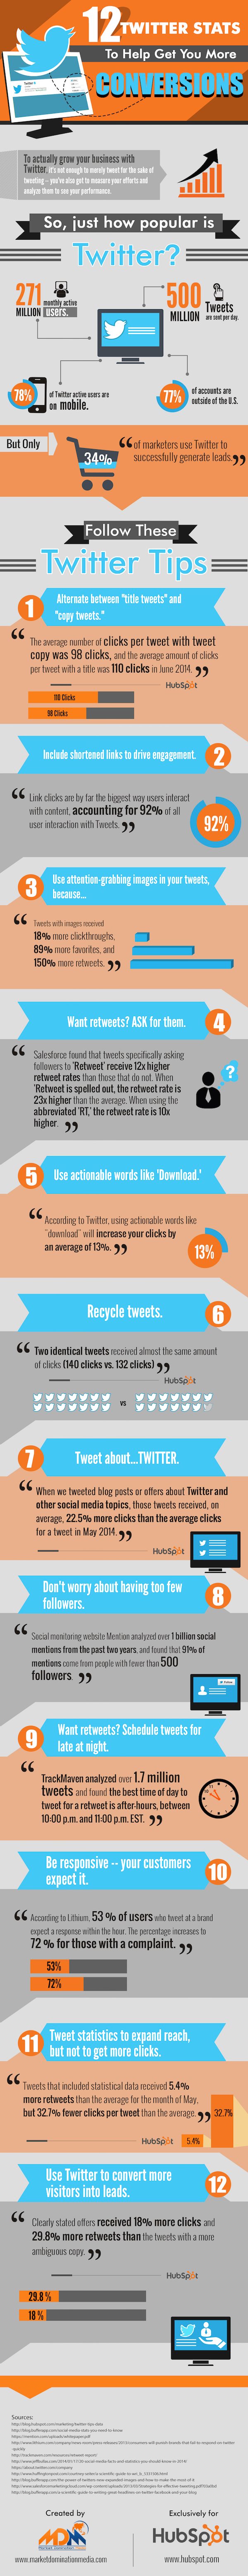 Twitter Conversions Infographic